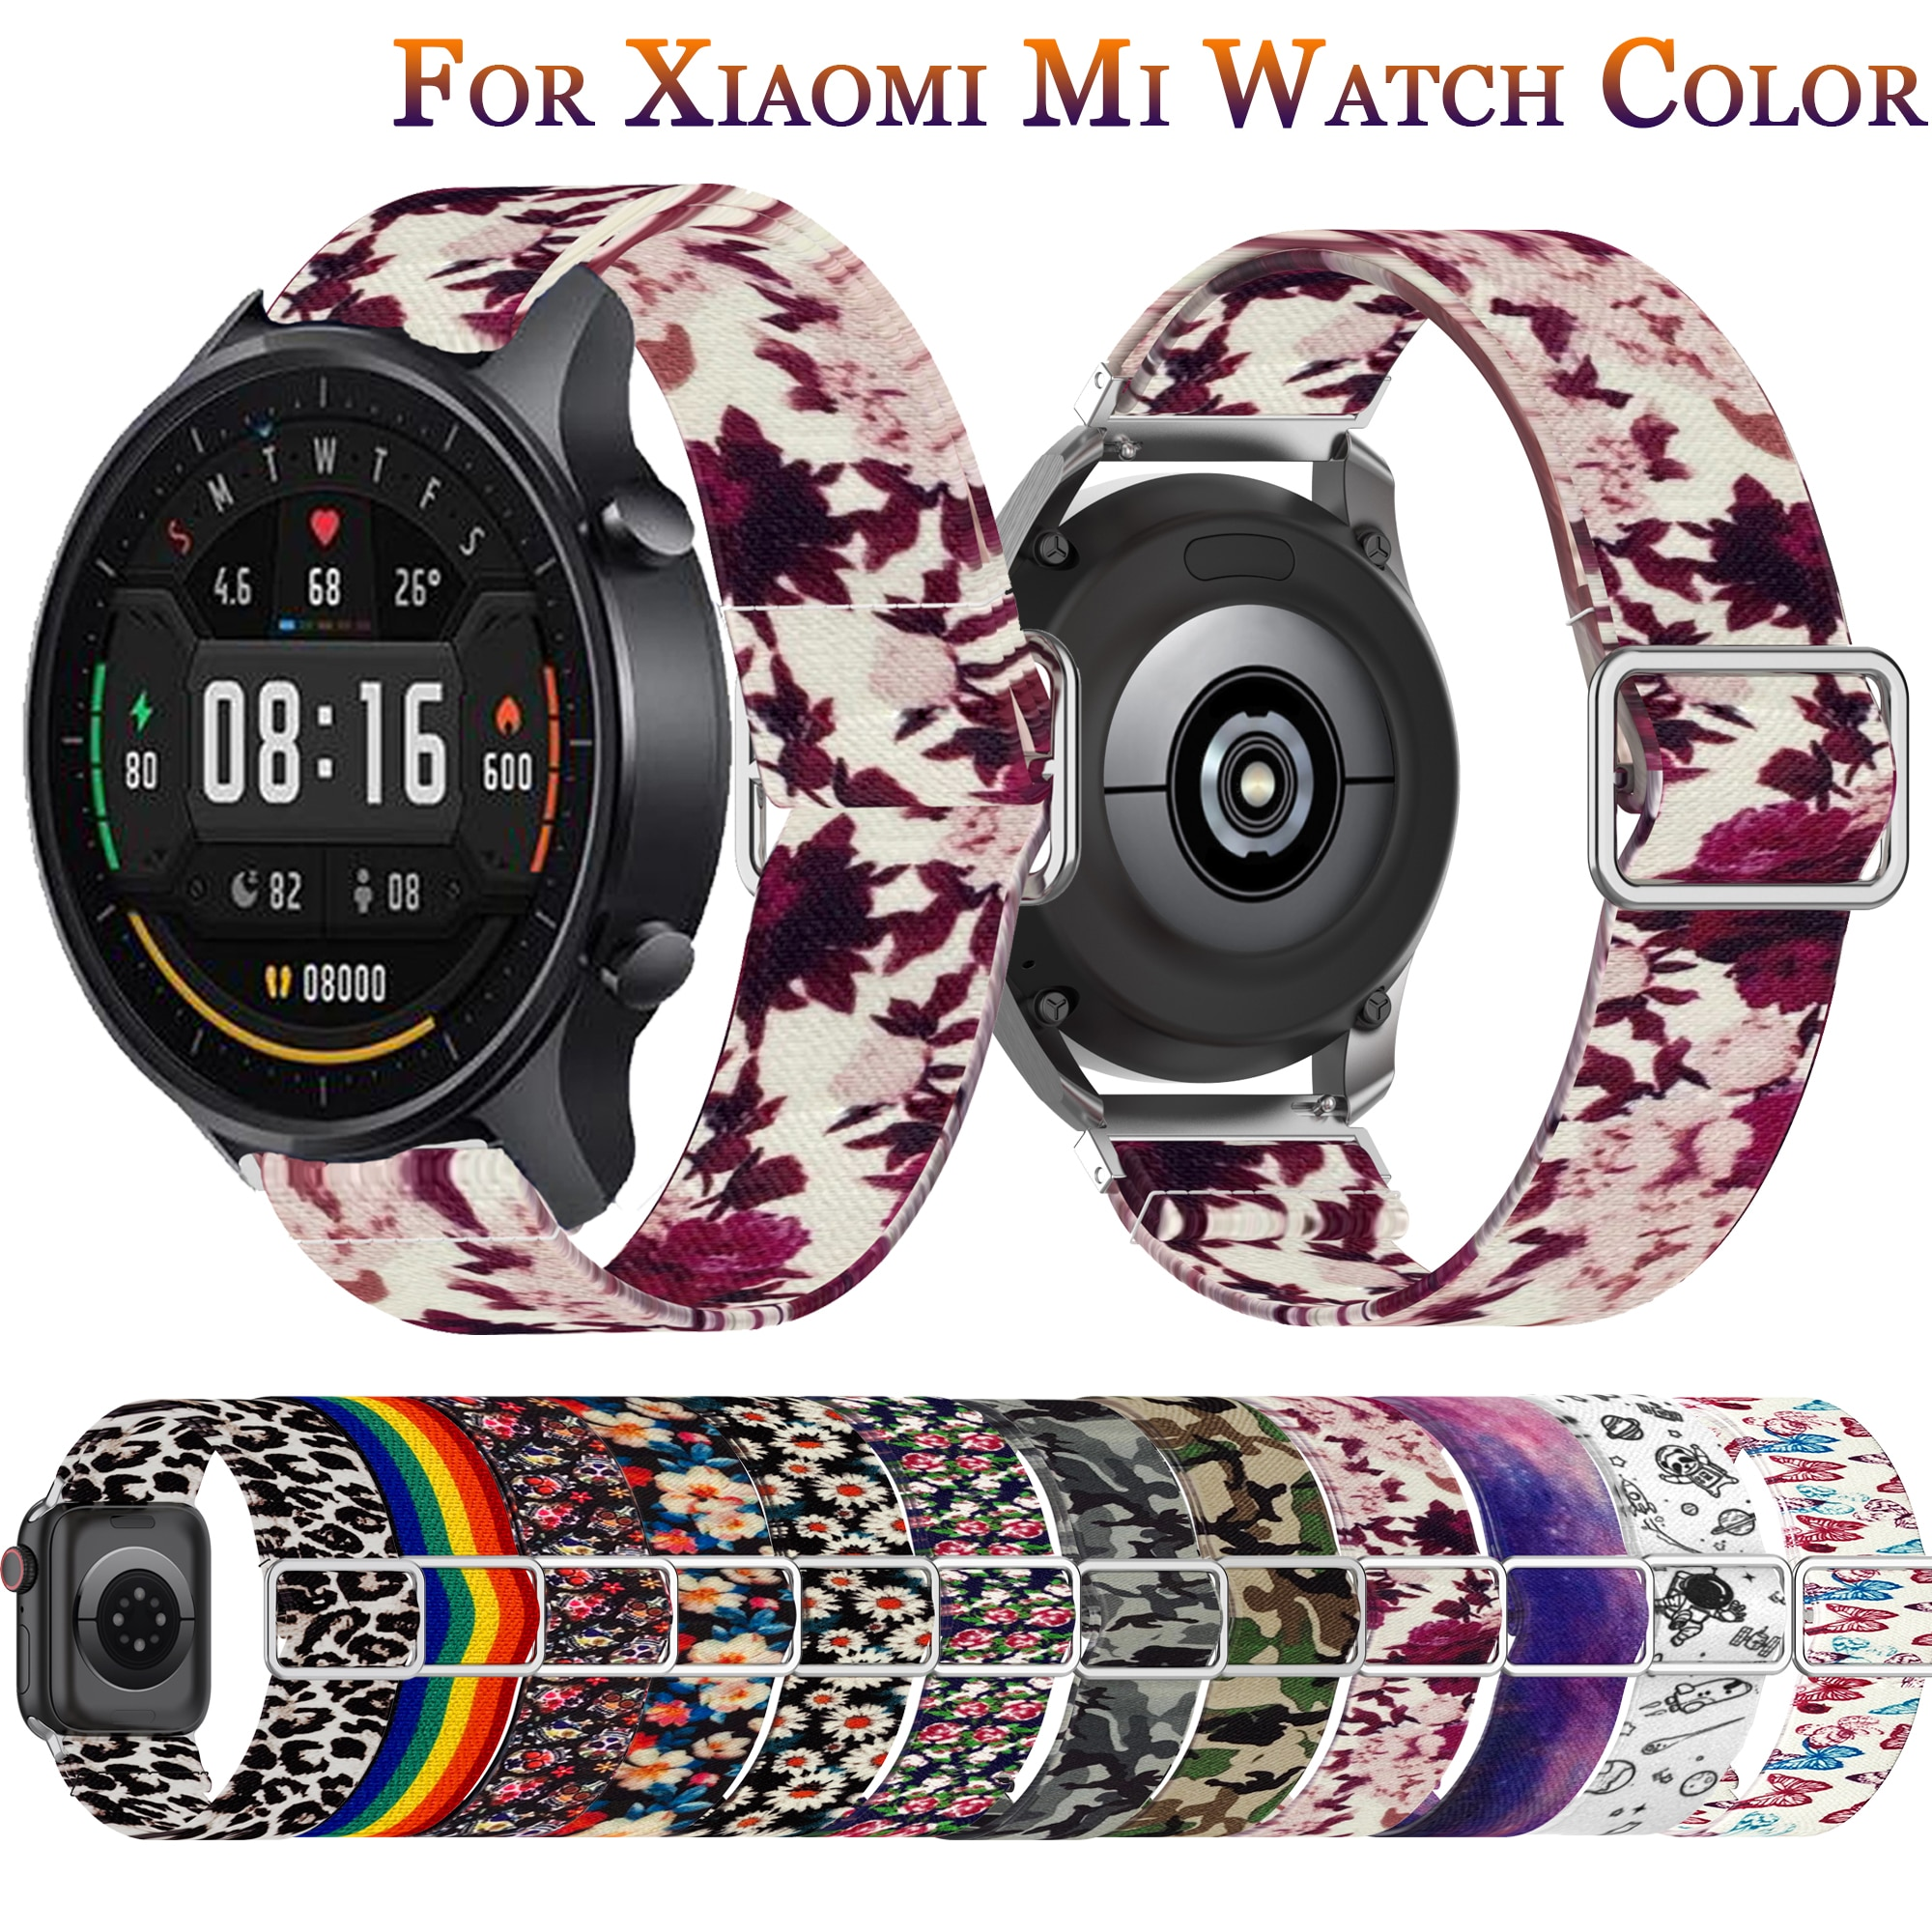 yayuu 22mm universal top quality vertical nylon watchband sports strap adjustable wristband replacement smart watch straps For Xiaomi Color Watch Mi Sports Smart Watch Color Nylon Sport Strap Replacement Watchband Wrist Bracelet 22mm Watch Band Correa